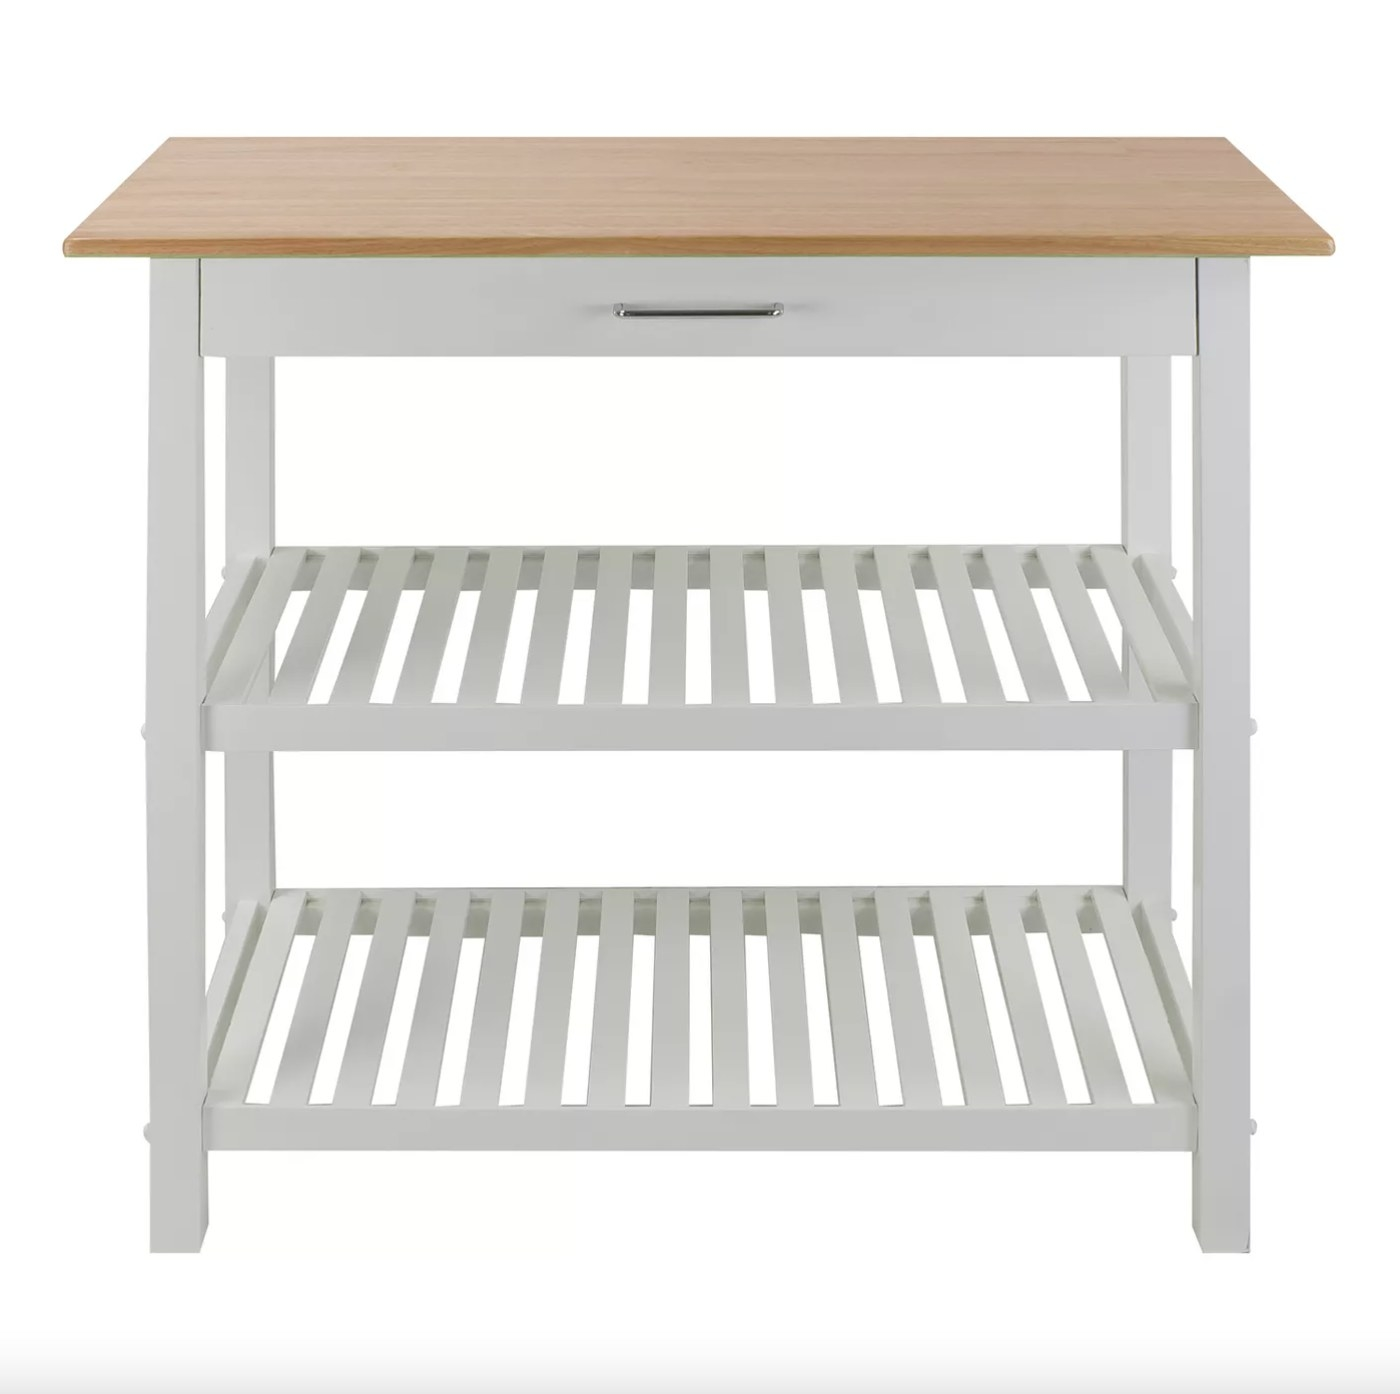 The kitchen island in white wood with a natural wood top and drawer with a silver handle